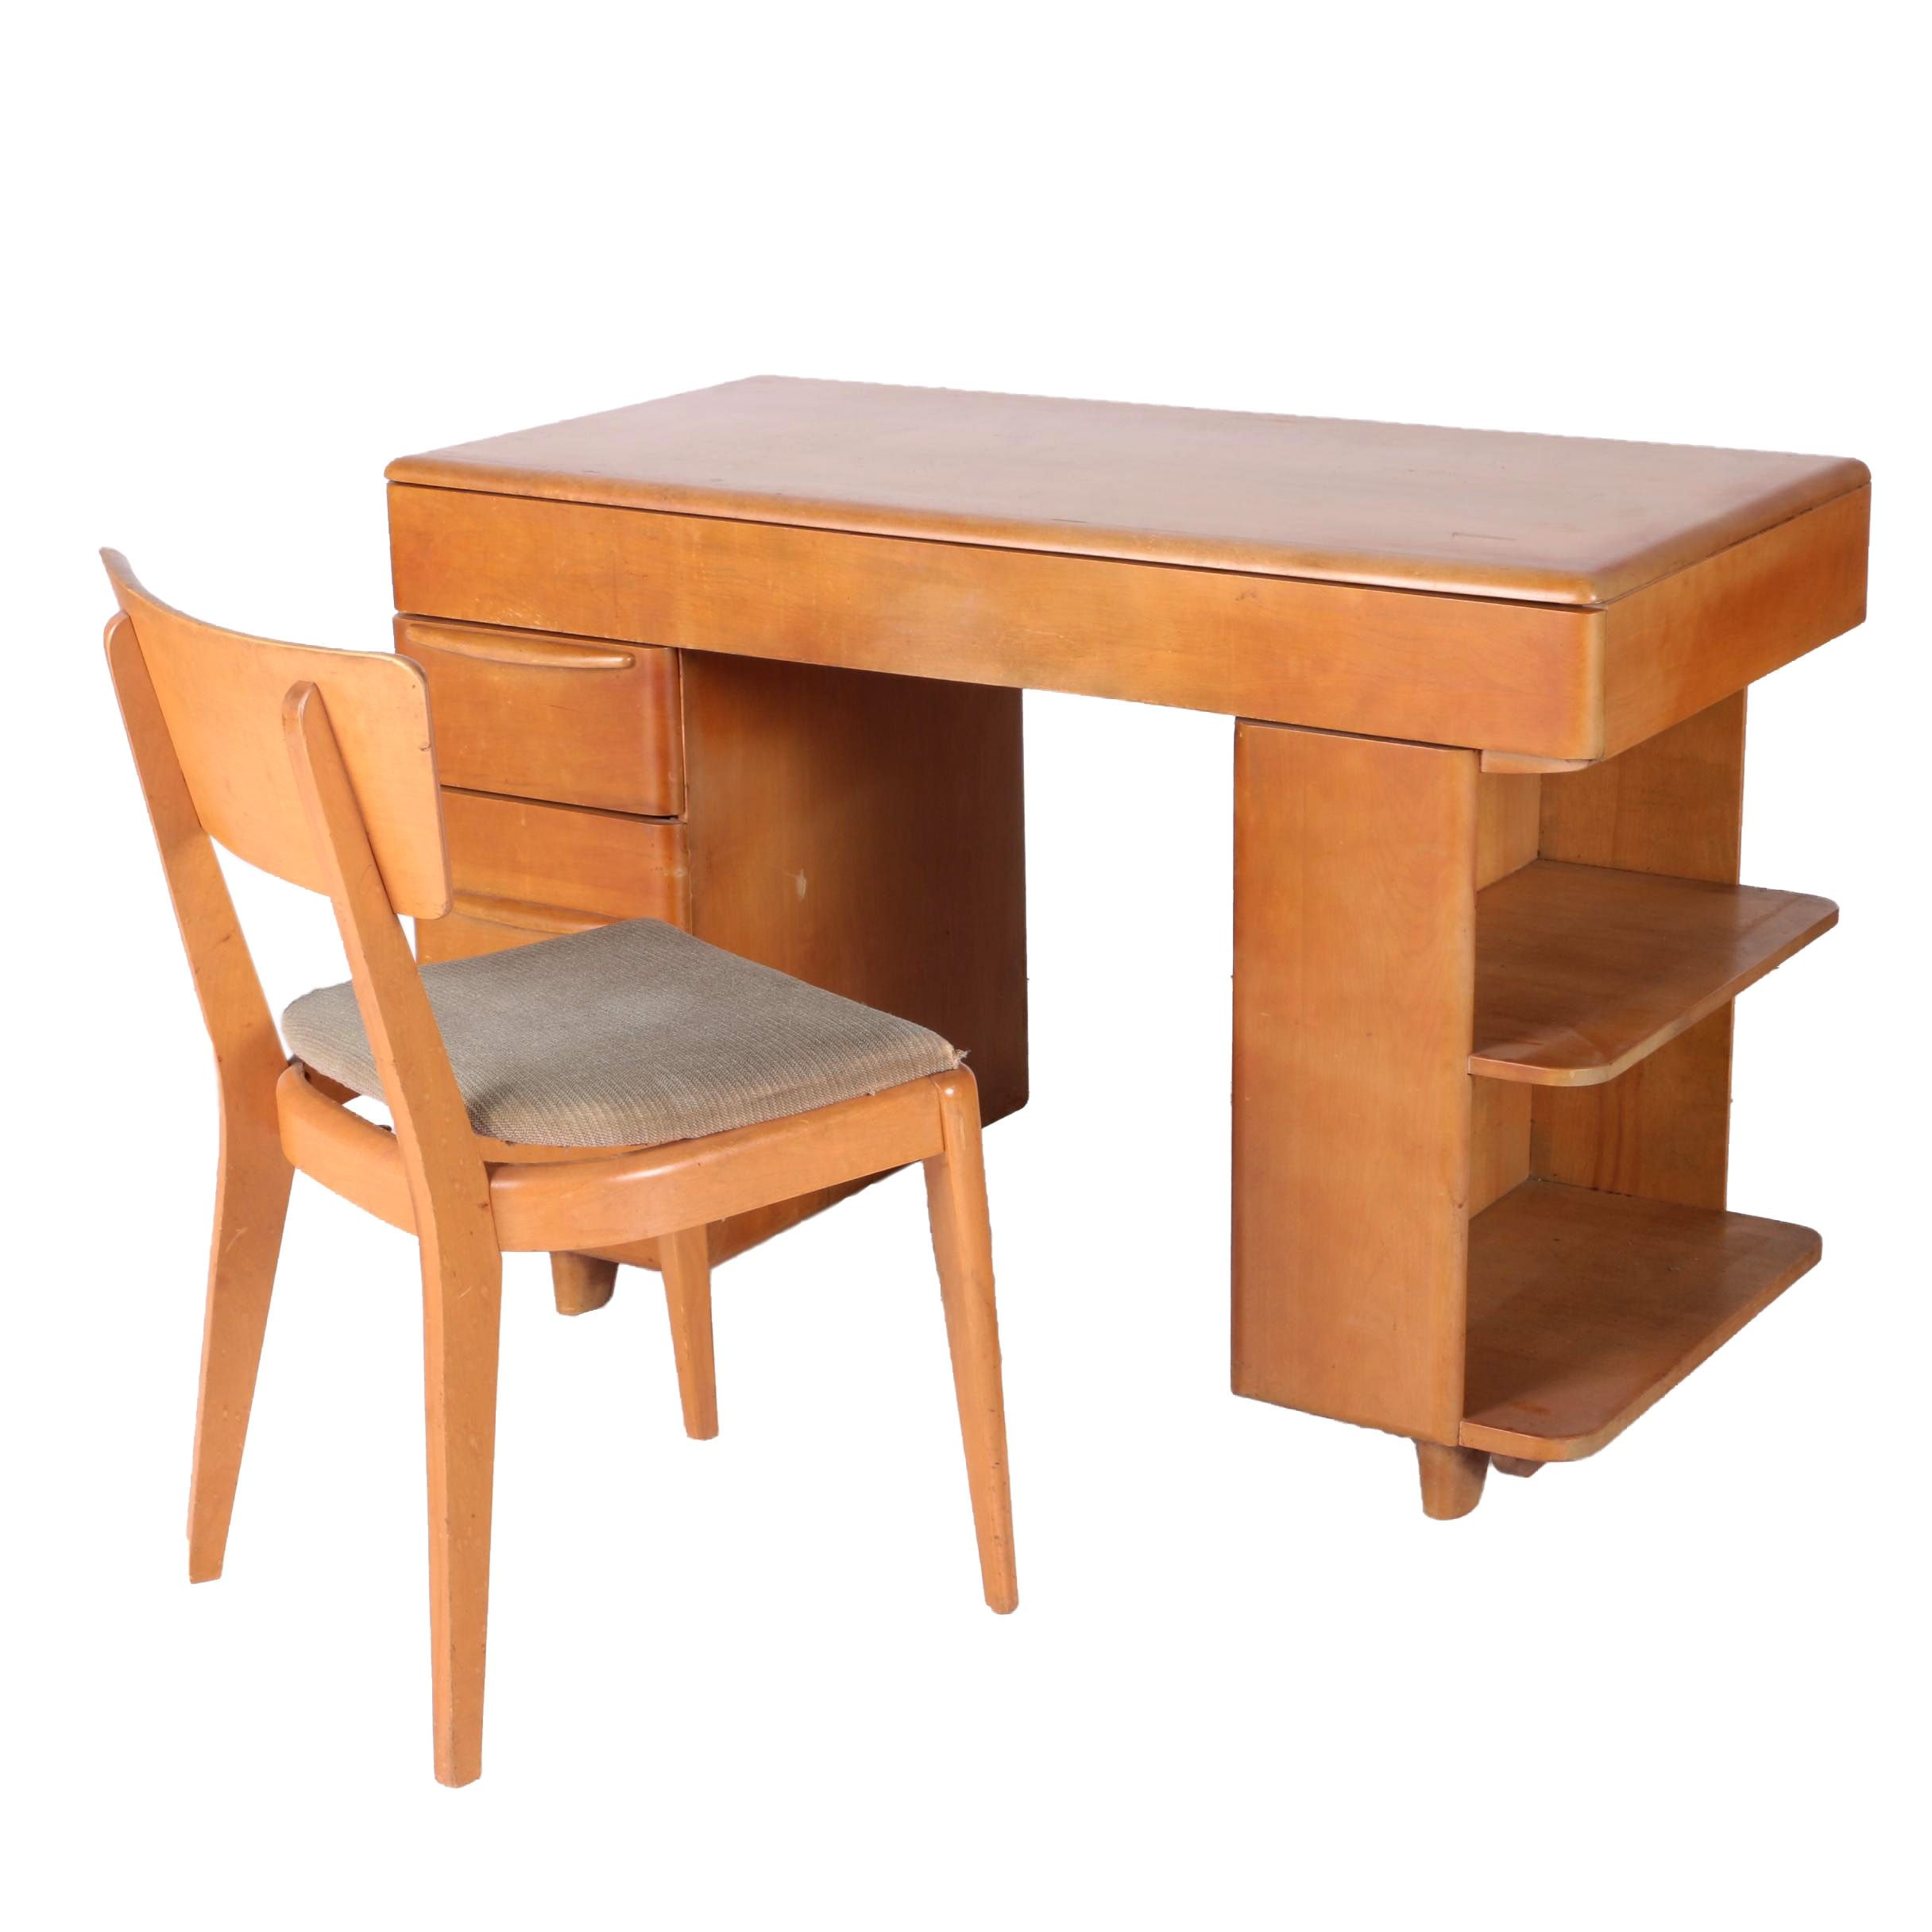 Mid Century Modern Heywood-Wakefield Desk with Chair